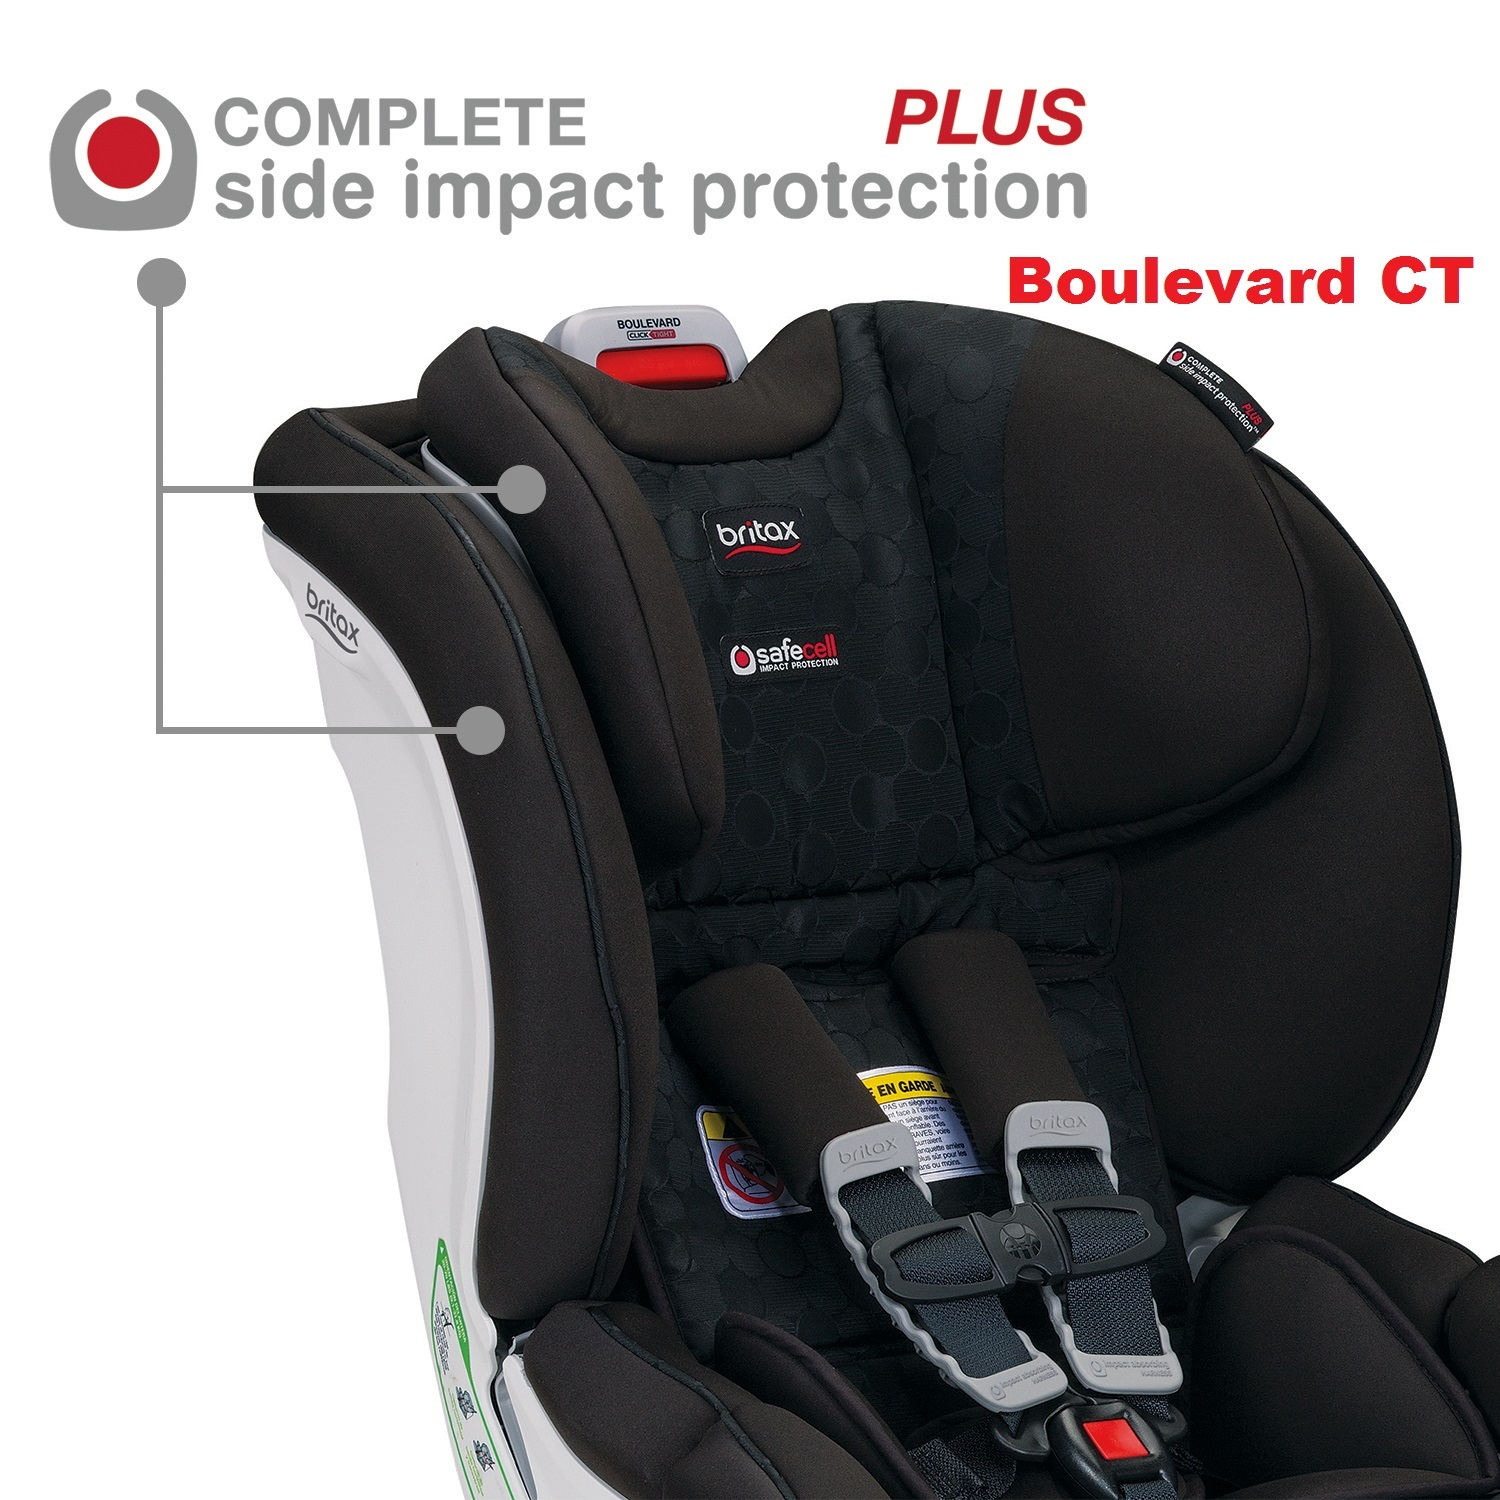 Carseatblog The Most Trusted Source For Car Seat Reviews